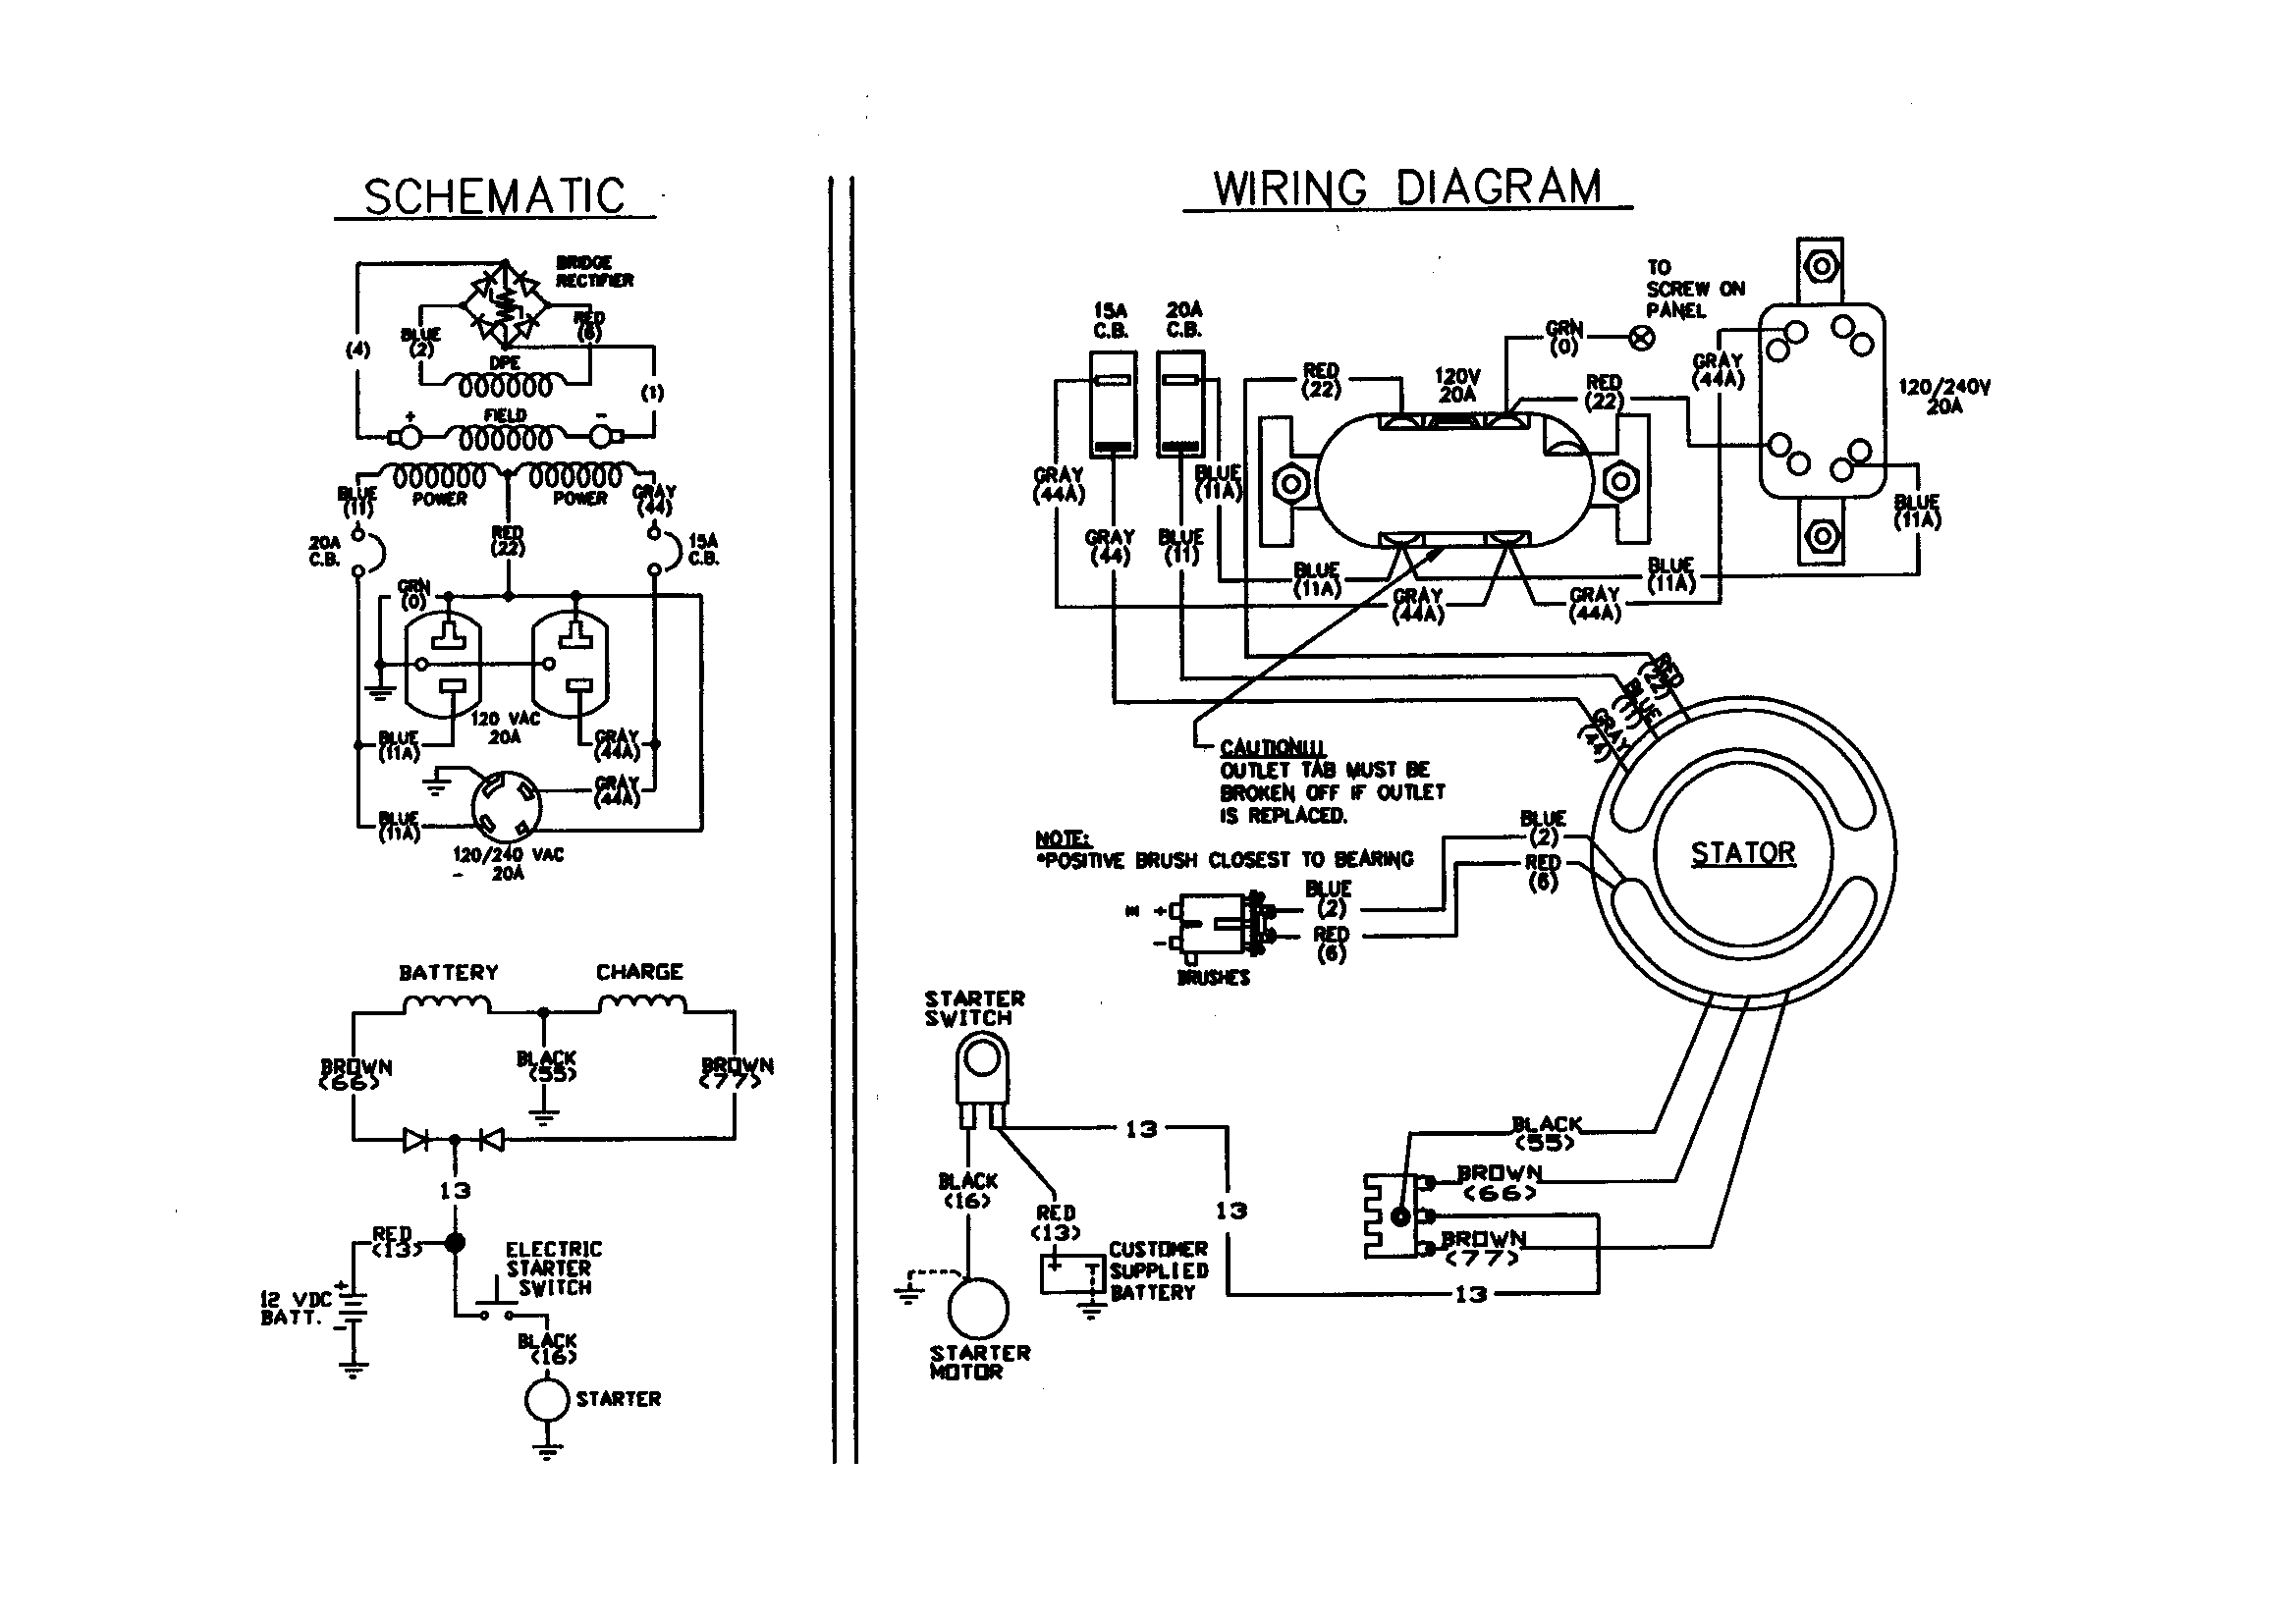 hight resolution of wiring diagram generator set diagram diagramtemplate wiring diagram generator transfer switch wiring diagram generator set